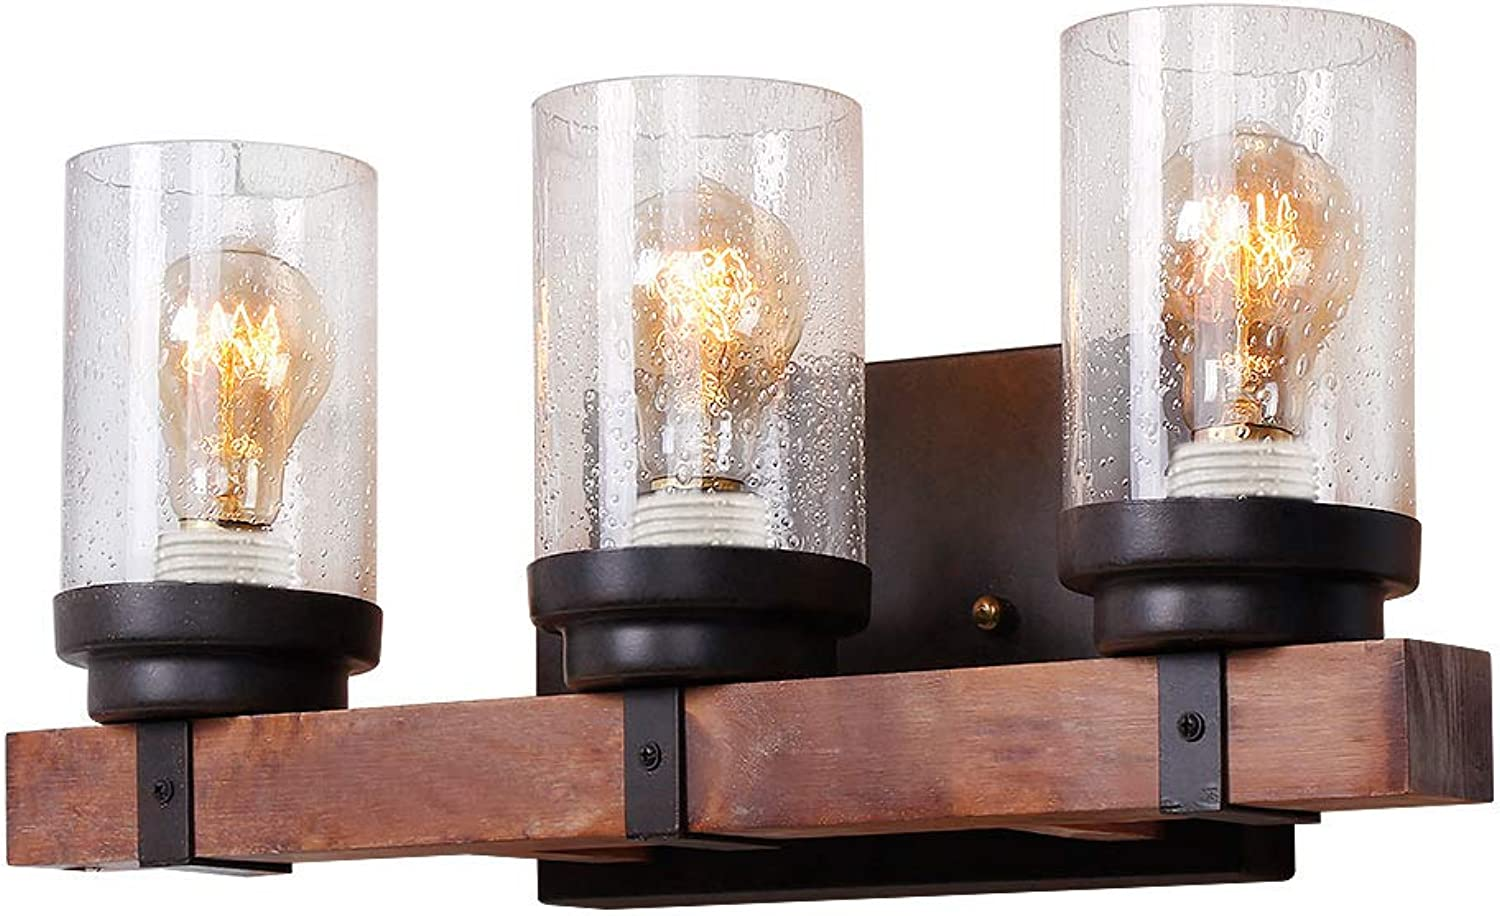 Anmytek Wall Lamp Wooden Wall Light Wall Sconce Fixture with Bubble Glass Shade (Three Lights)